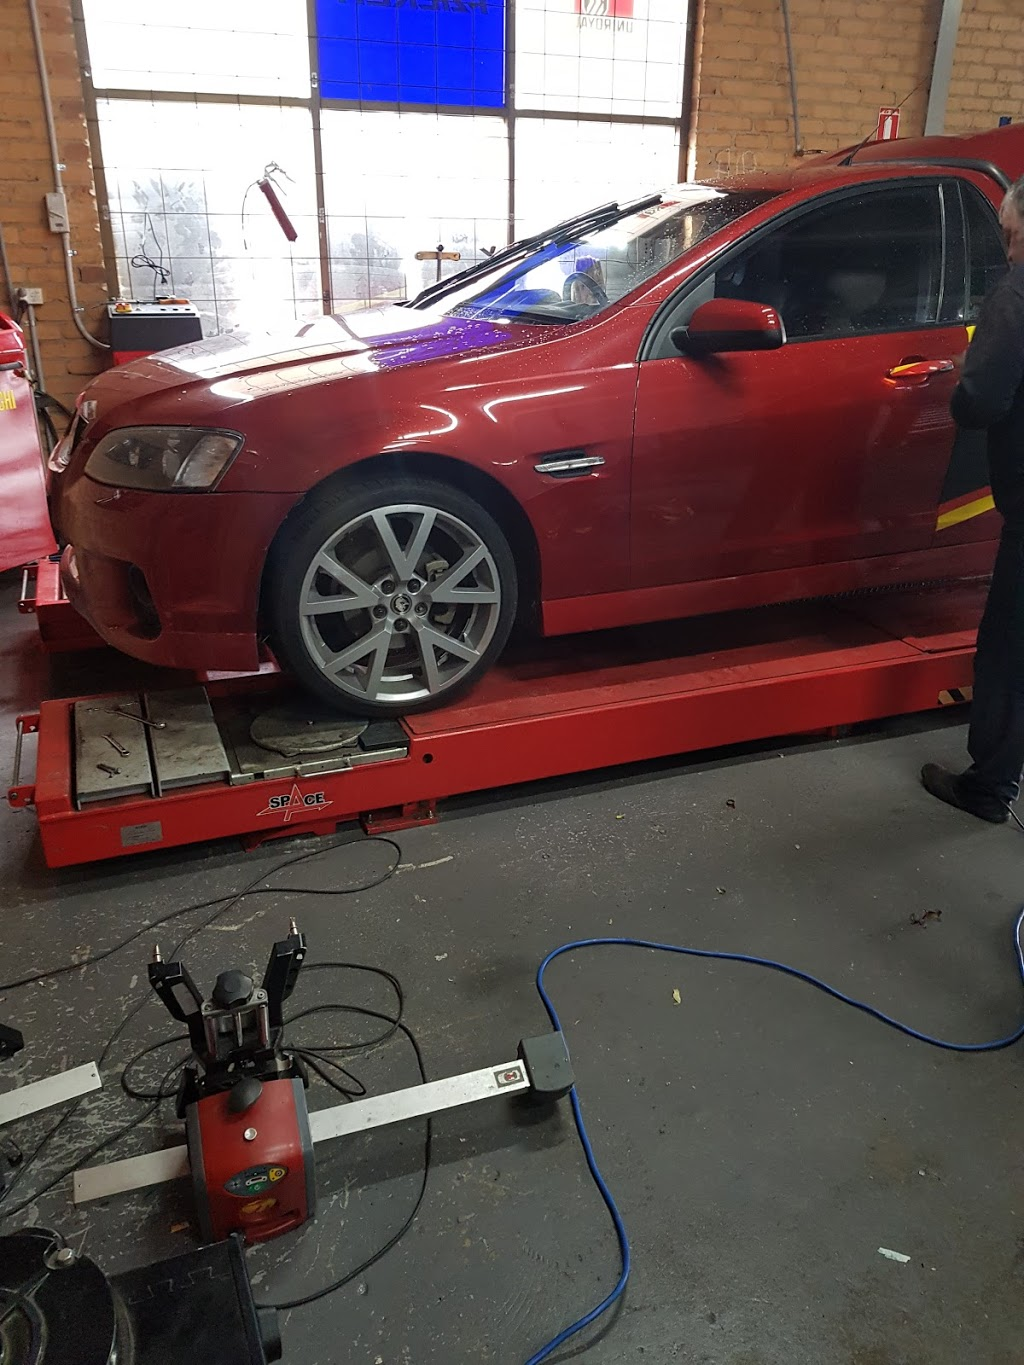 Affordable Tyres   car repair   36 Grimwade St, Mitchell ACT 2911, Australia   0261812930 OR +61 2 6181 2930